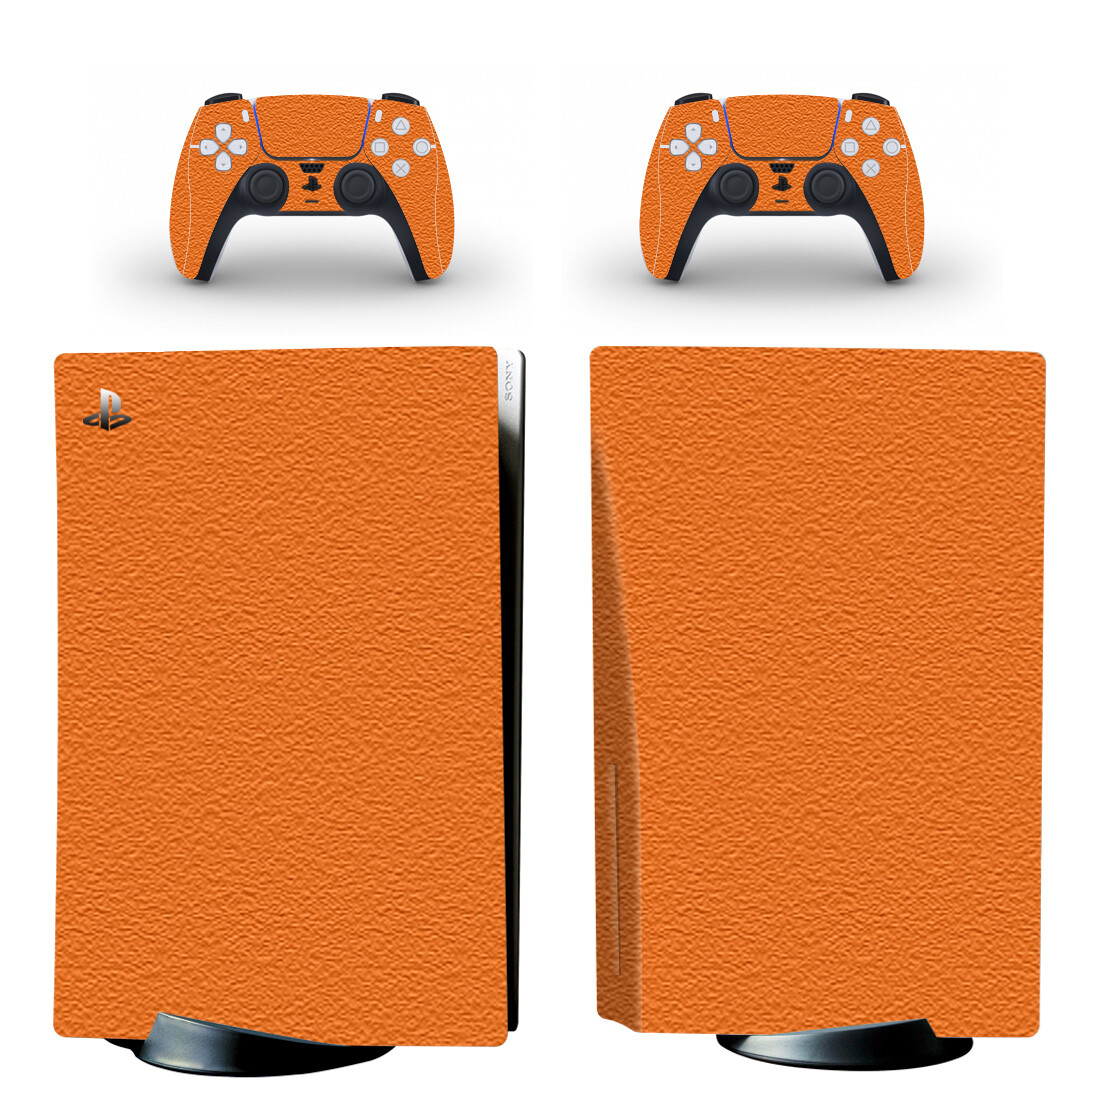 Solid Color Wallpapers Skin Sticker Decal For PlayStation 5 Design 5